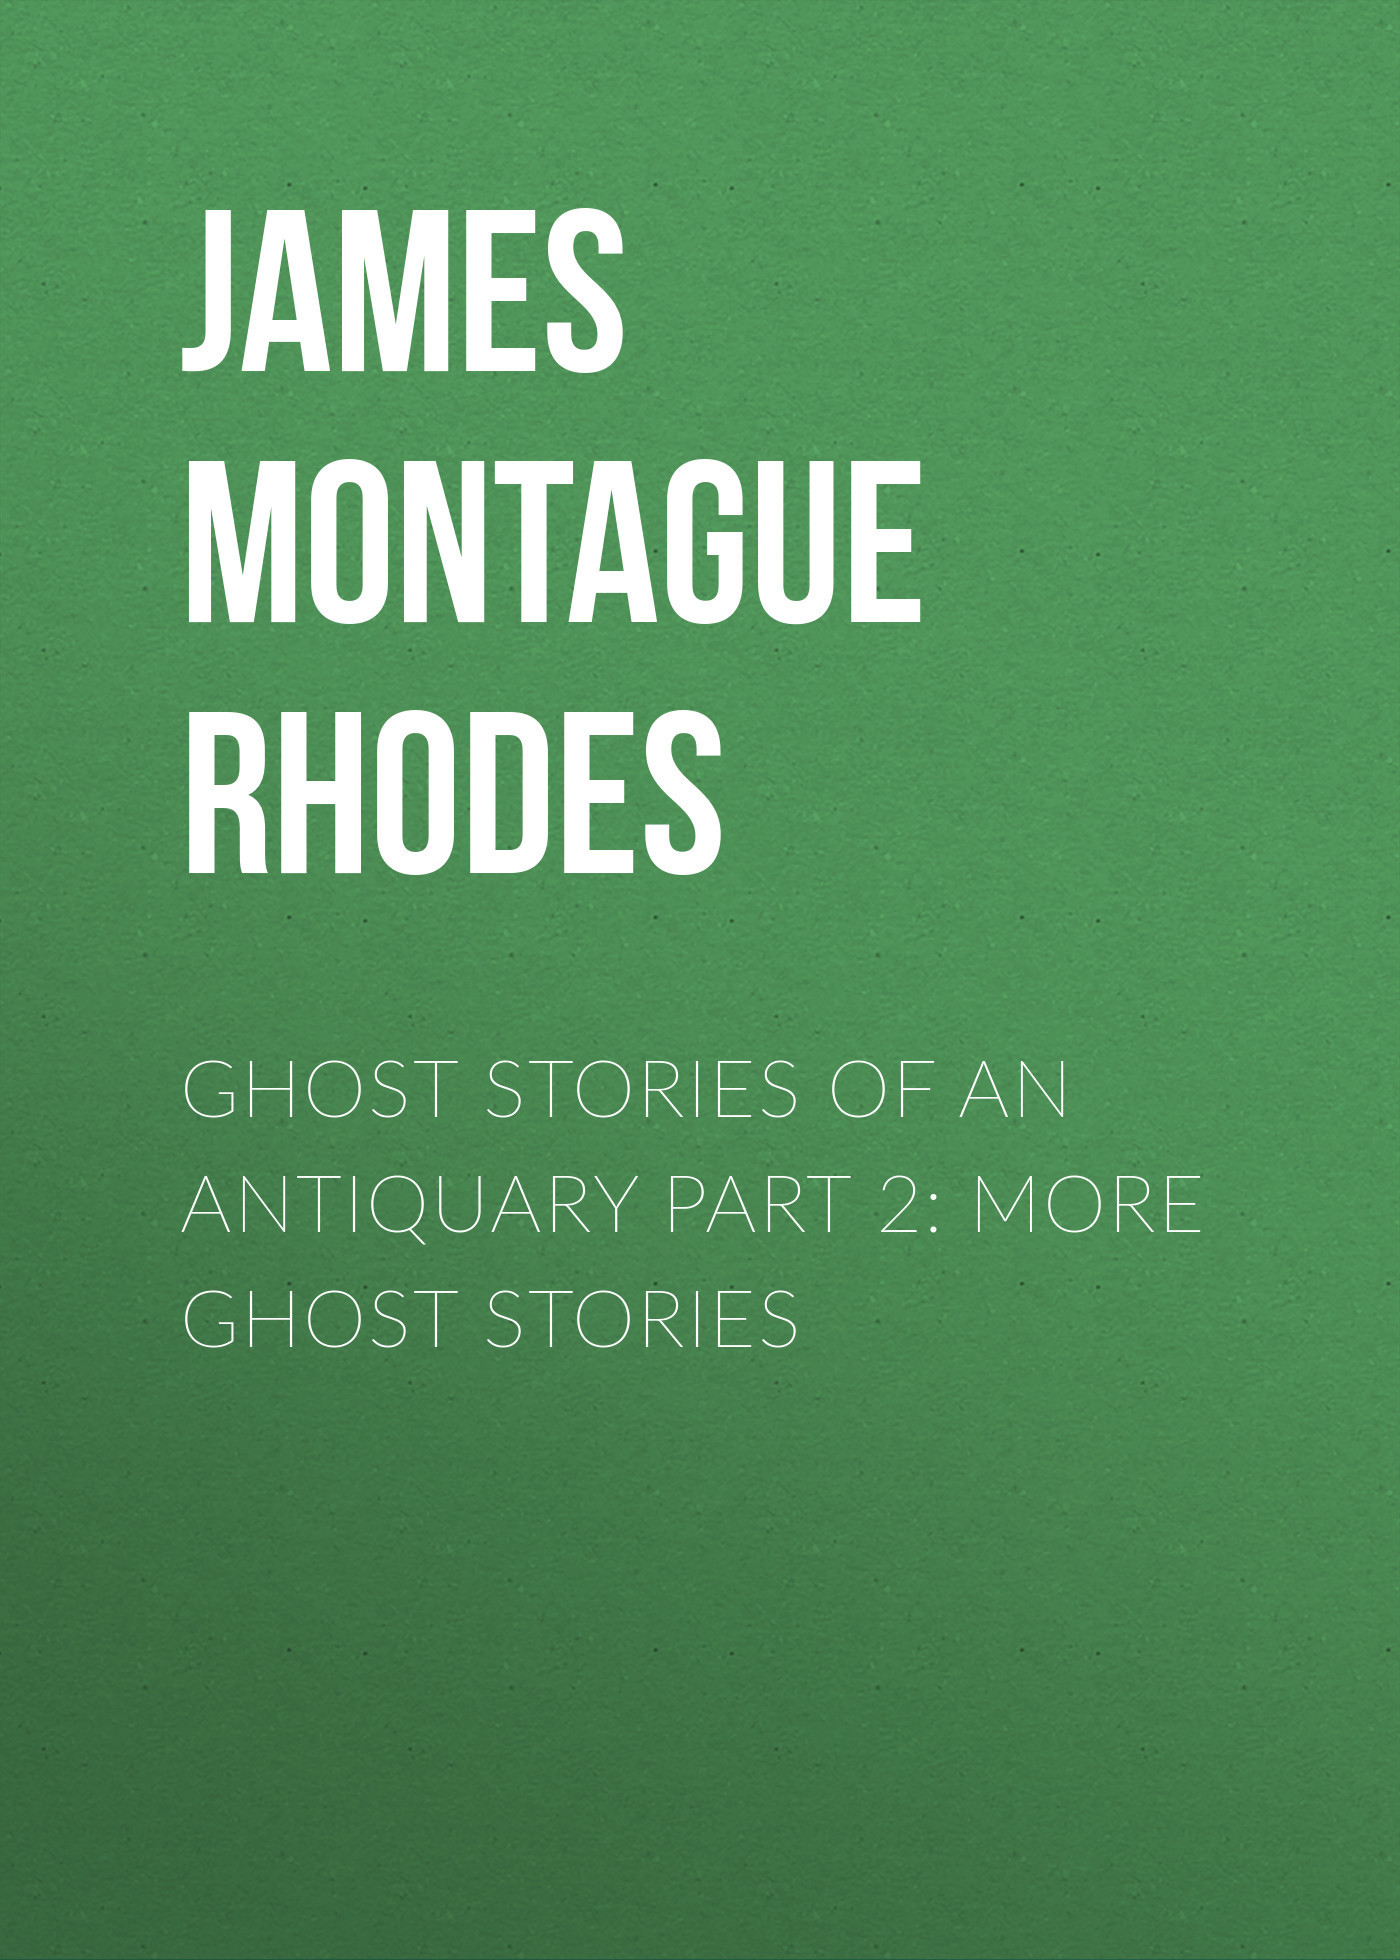 James Montague Rhodes Ghost Stories of an Antiquary Part 2: More Ghost Stories creepy comics volume 2 page 1